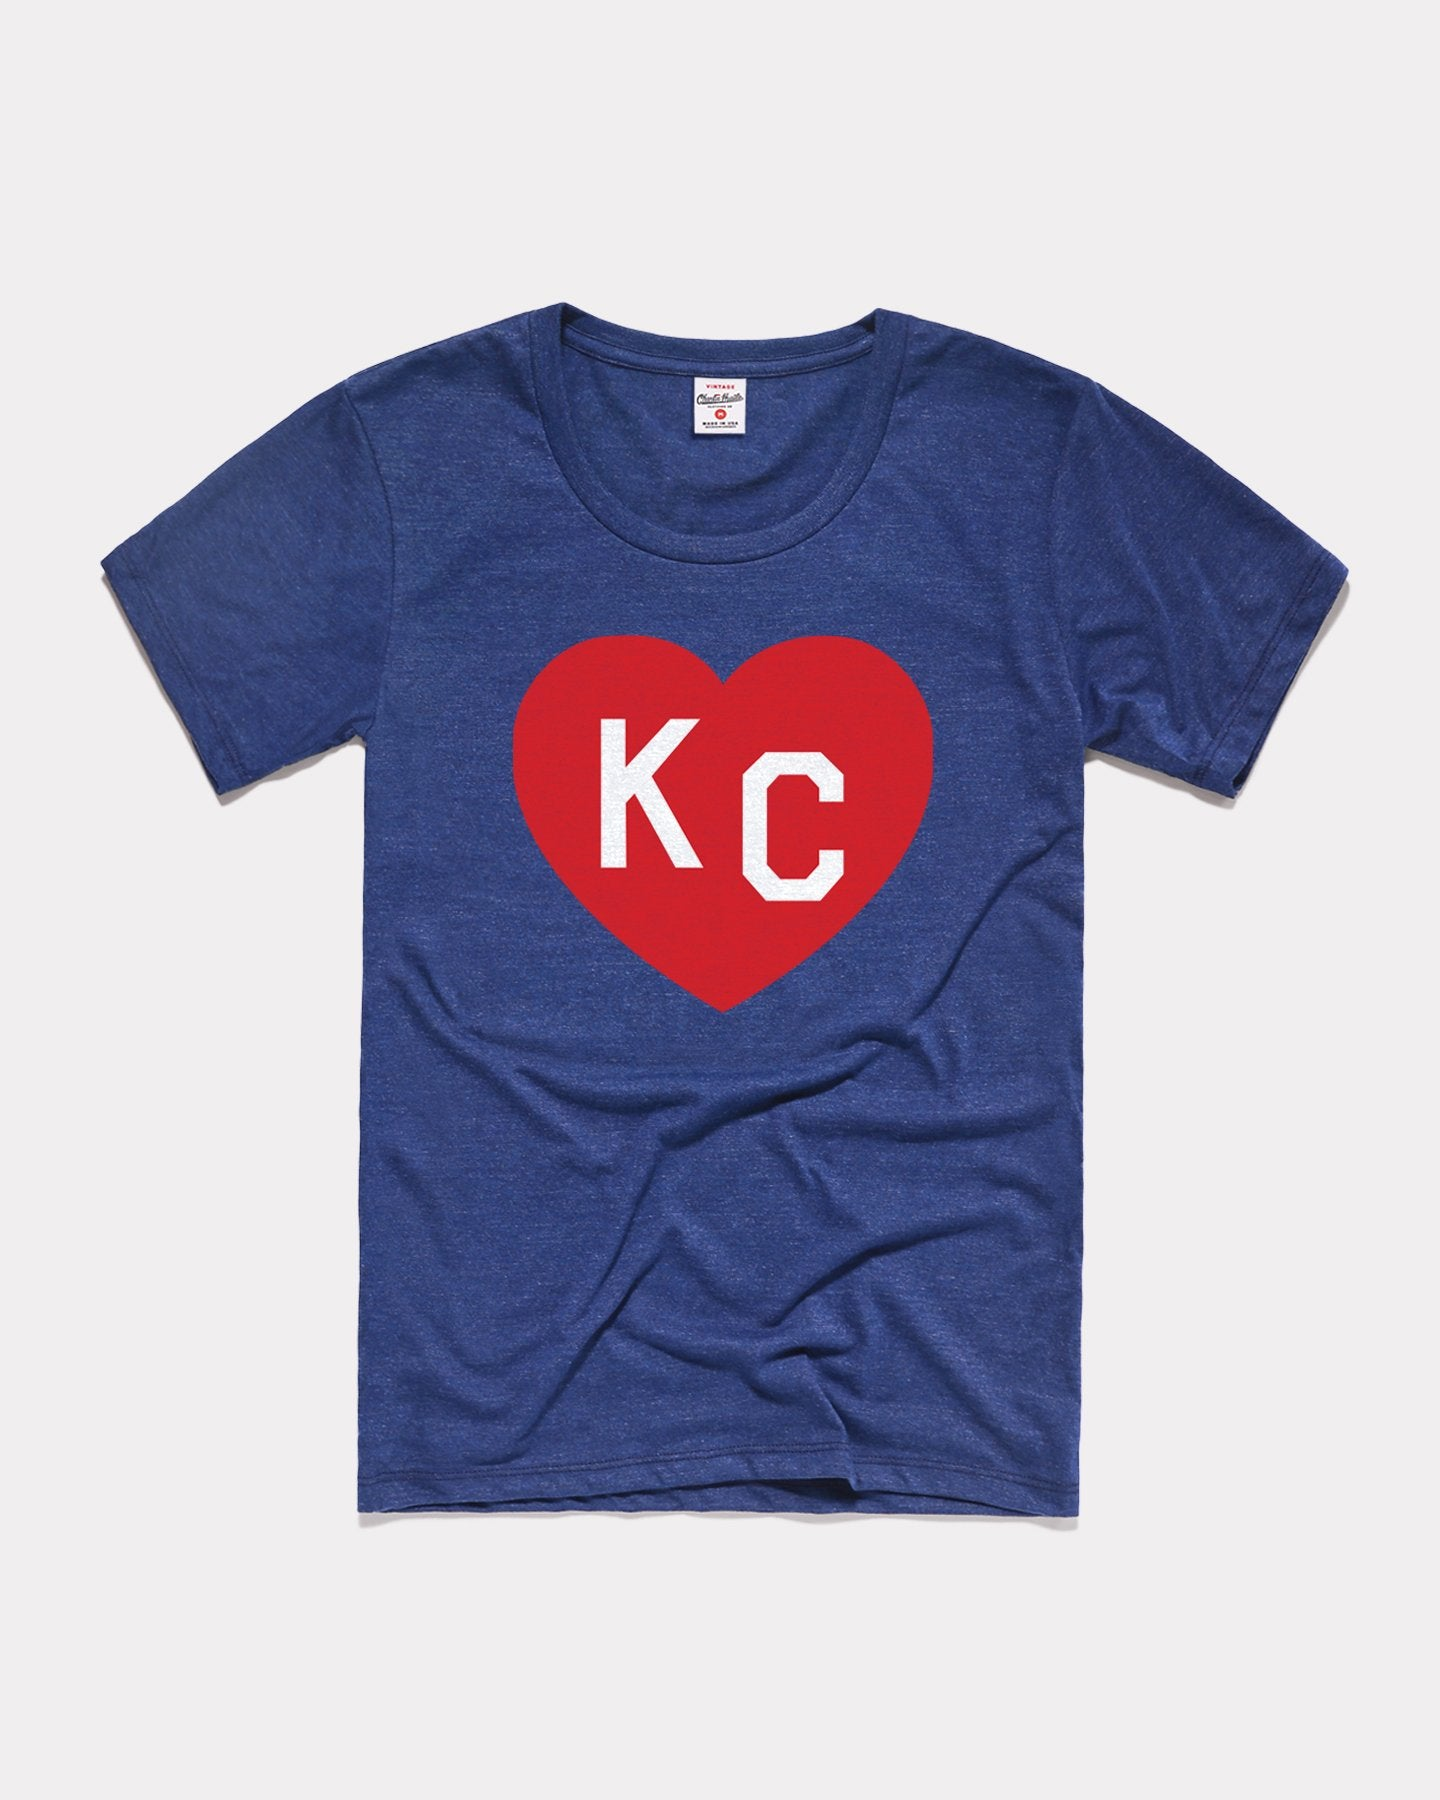 Women's Navy KC Heart Vintage T-Shirt